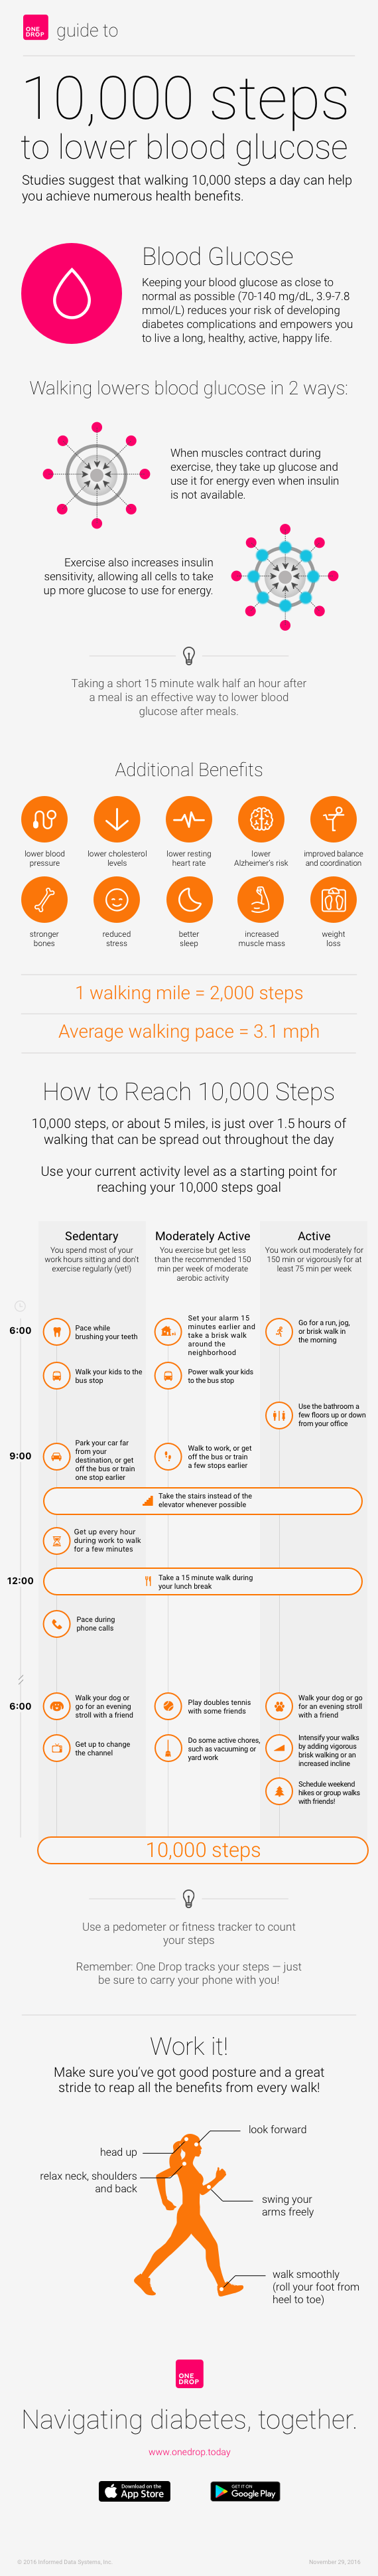 10,000 steps a day for diabetes - activity for diabetes - walking for diabetes - can walking improve diabetes - walking to treat diabetes